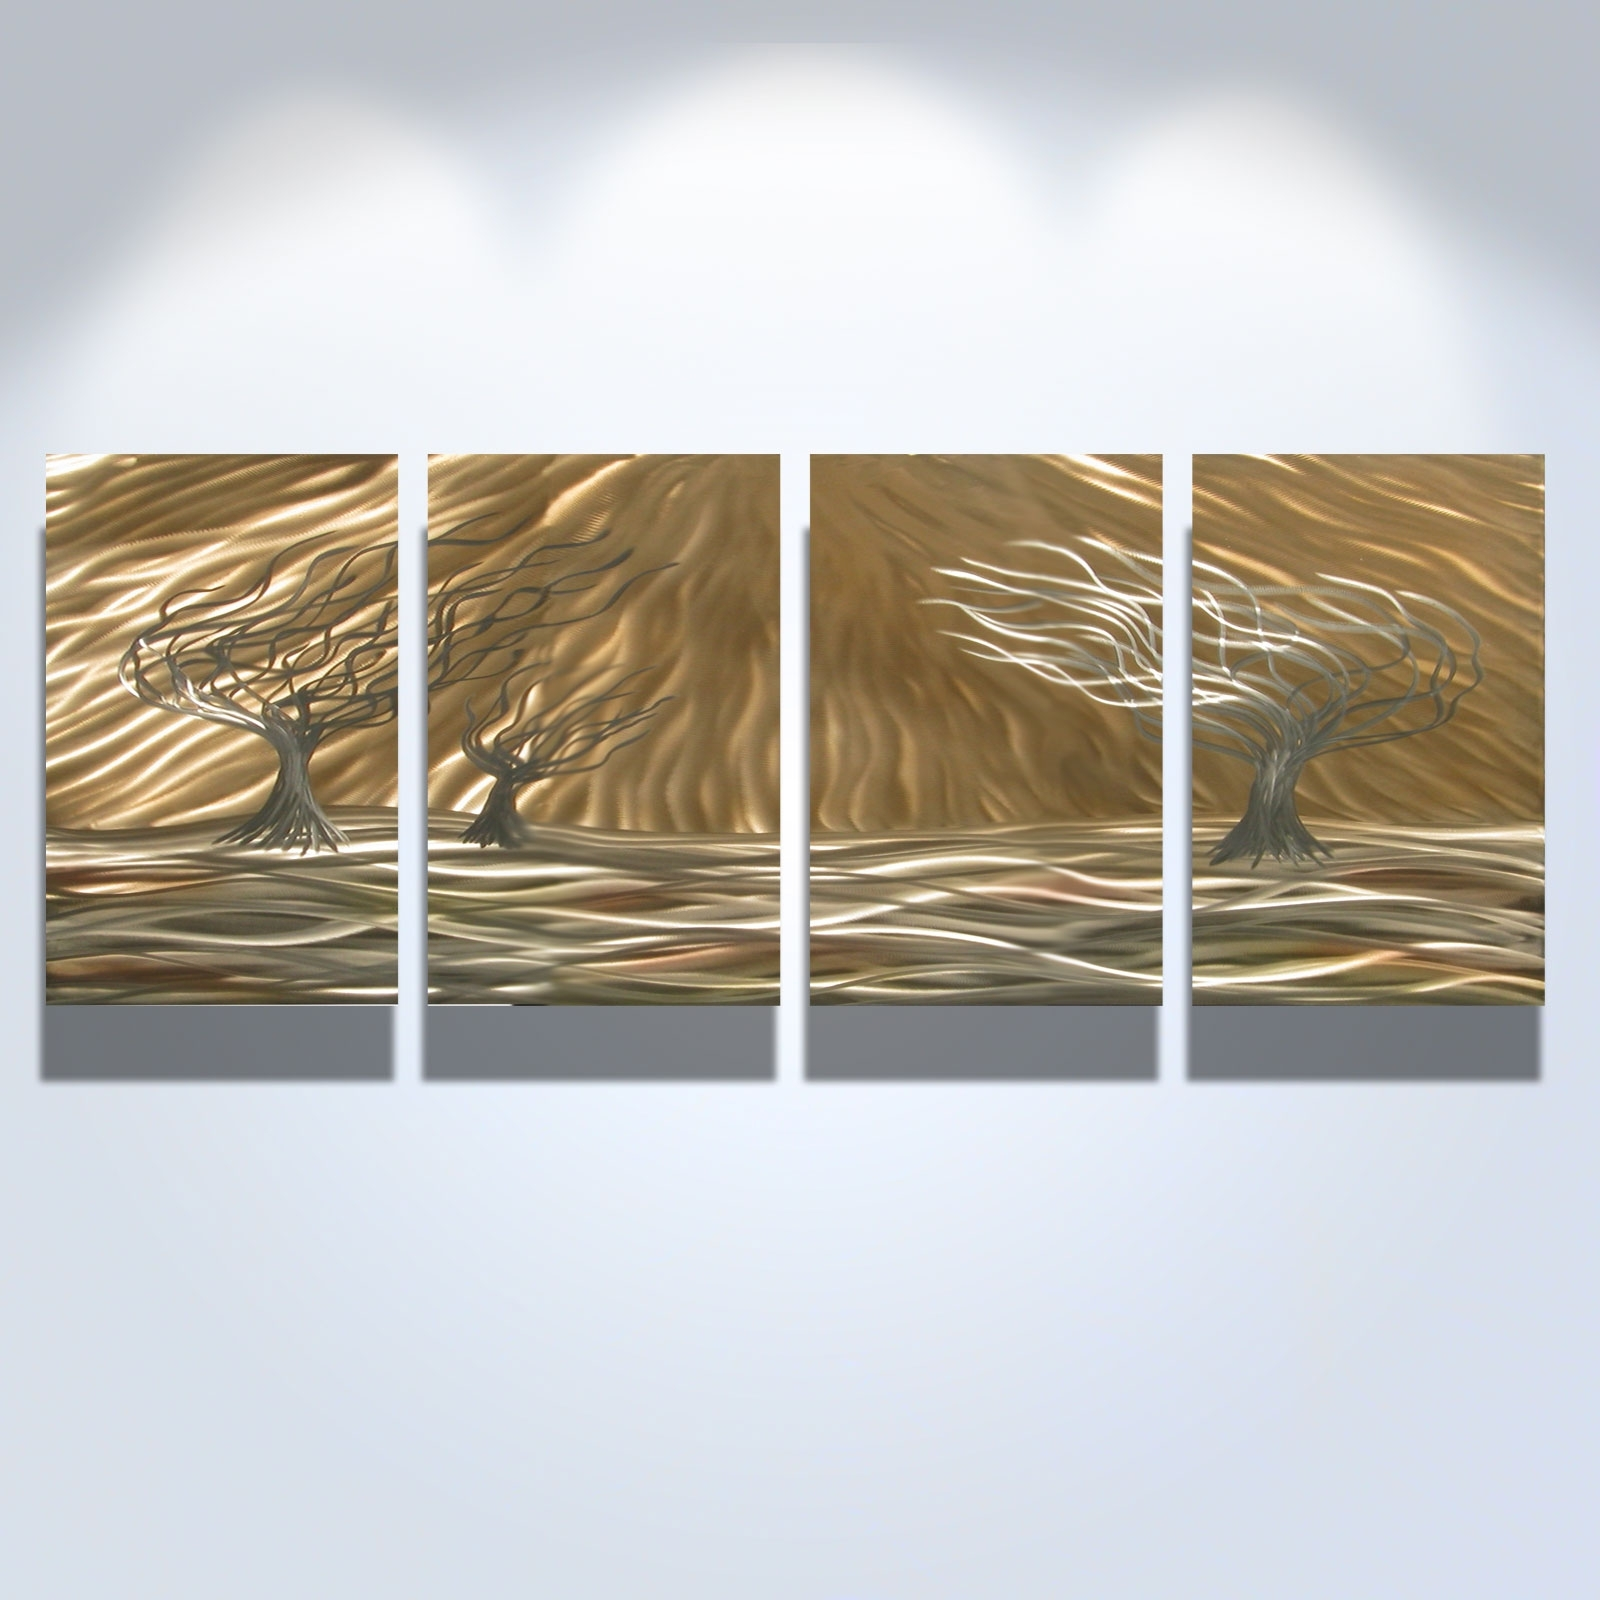 Fashionable Contemporary Metal Wall Art For 3 Trees 4 Panel – Abstract Metal Wall Art Contemporary Modern Decor (View 15 of 15)